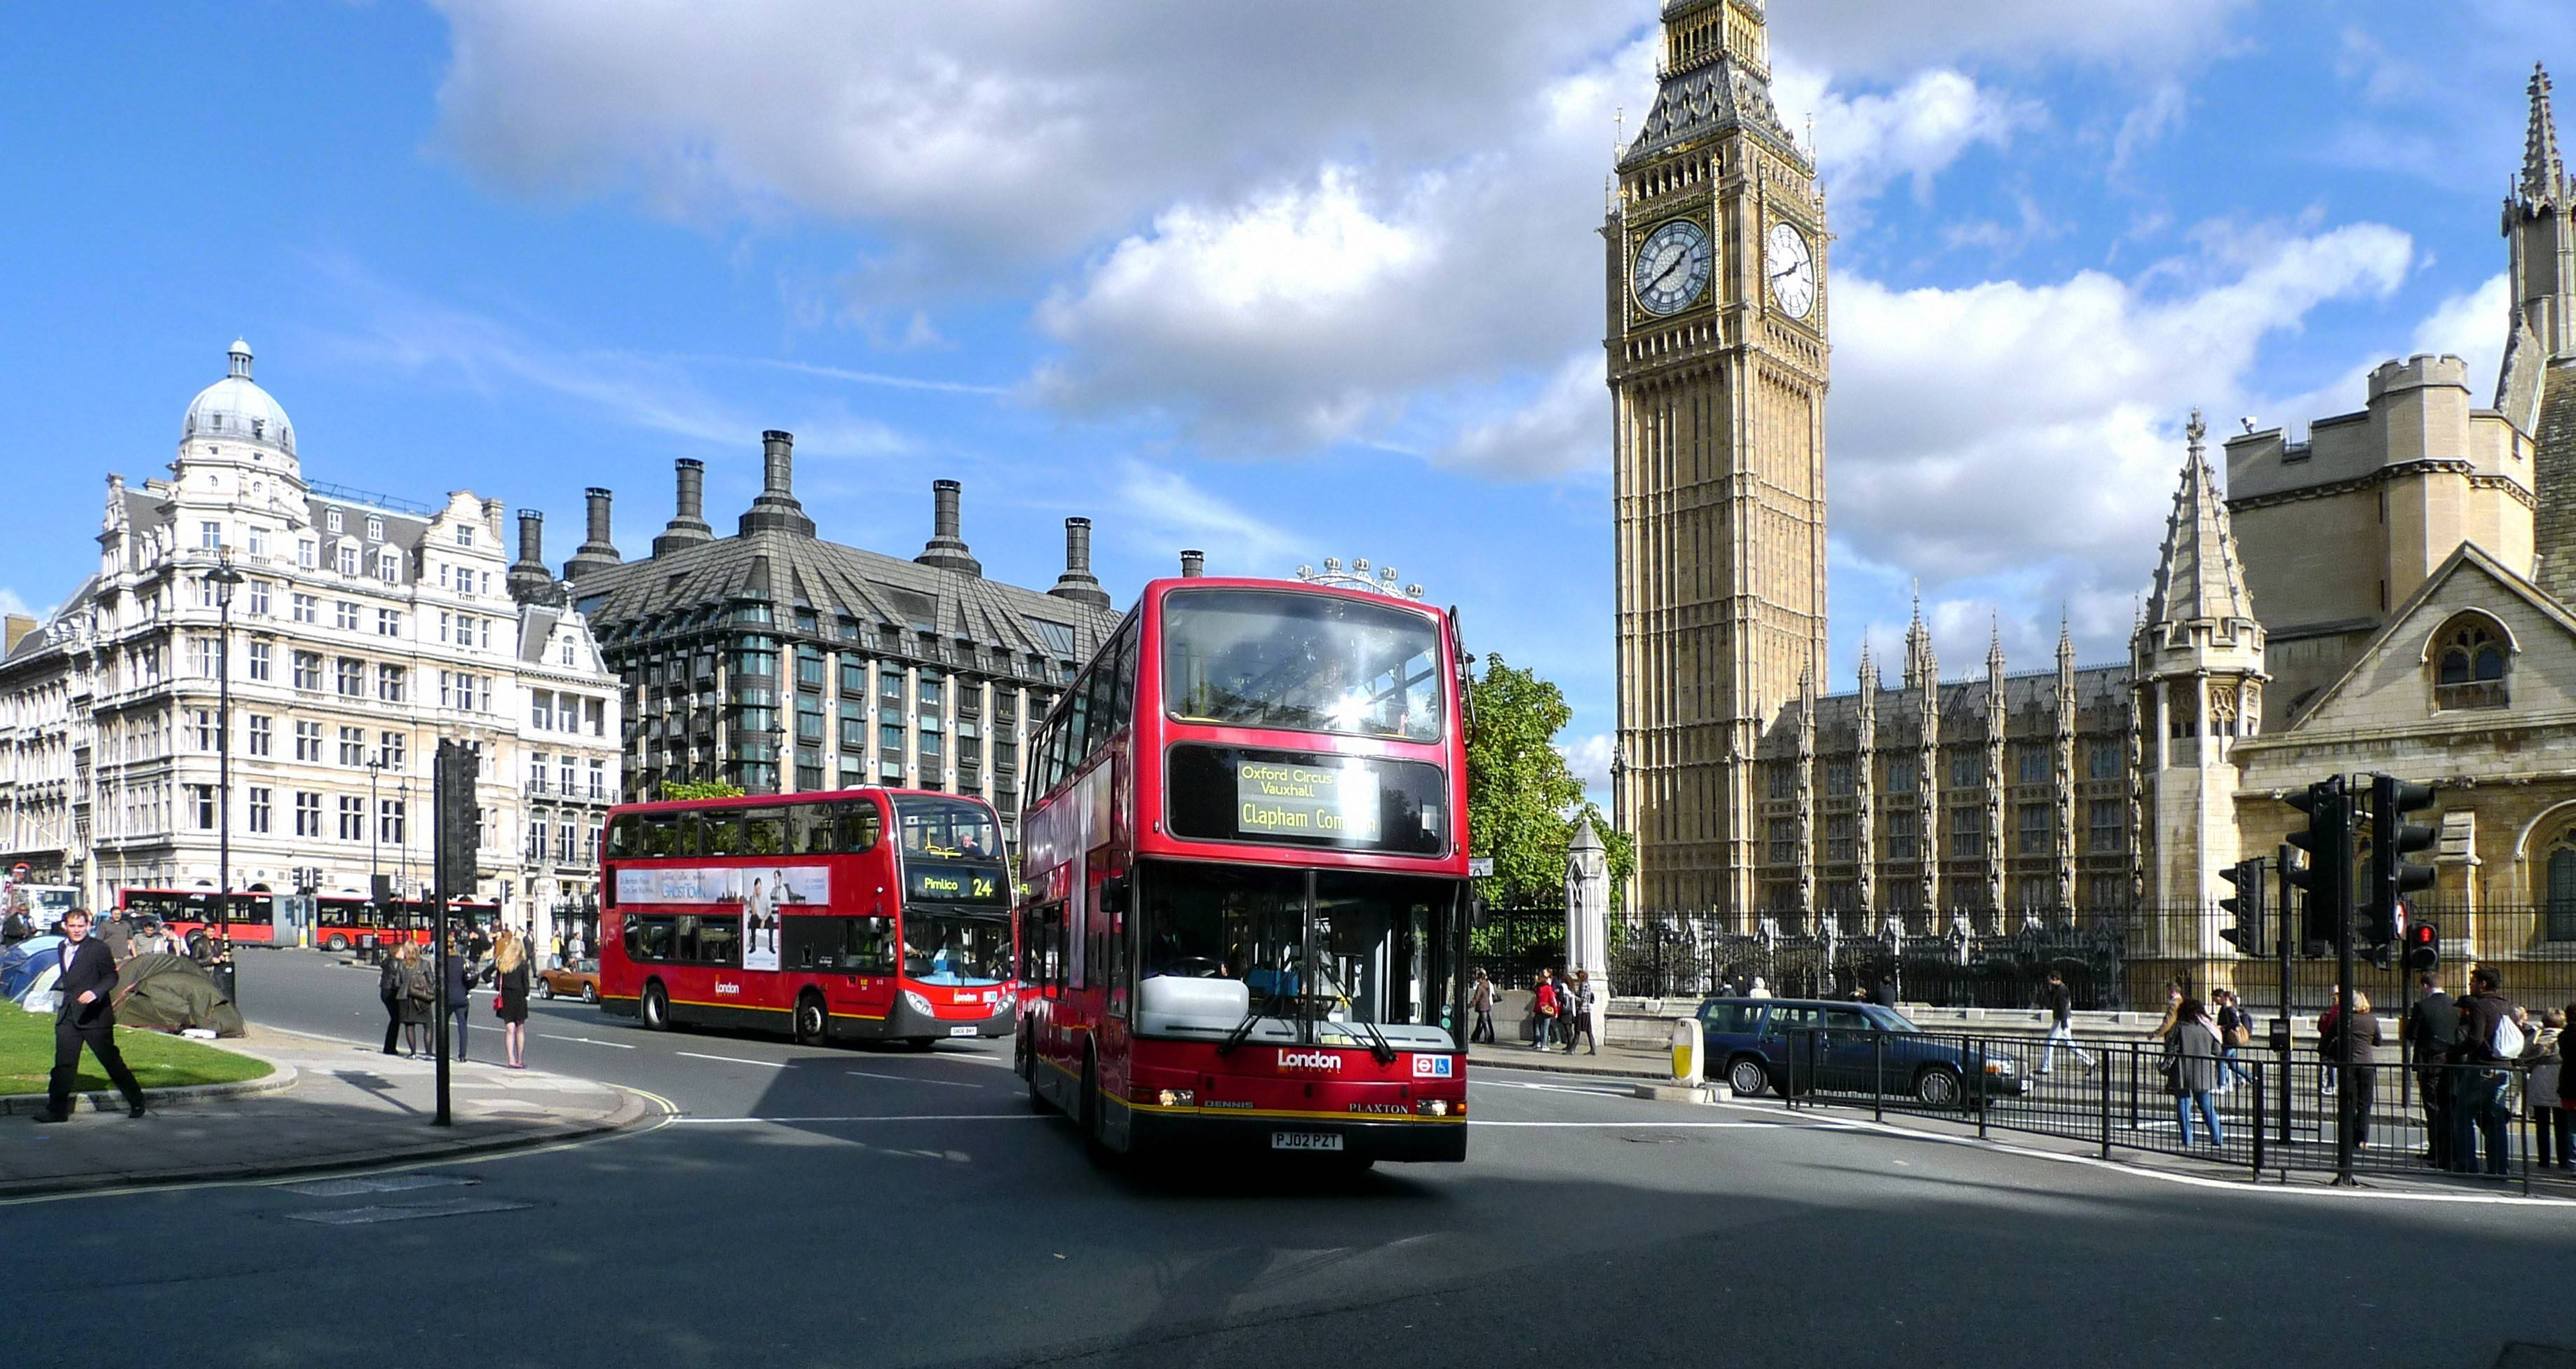 Hd wallpaper london - Cityscapes World And Travel Hd Hq Wallpaper Wide Wallpapers